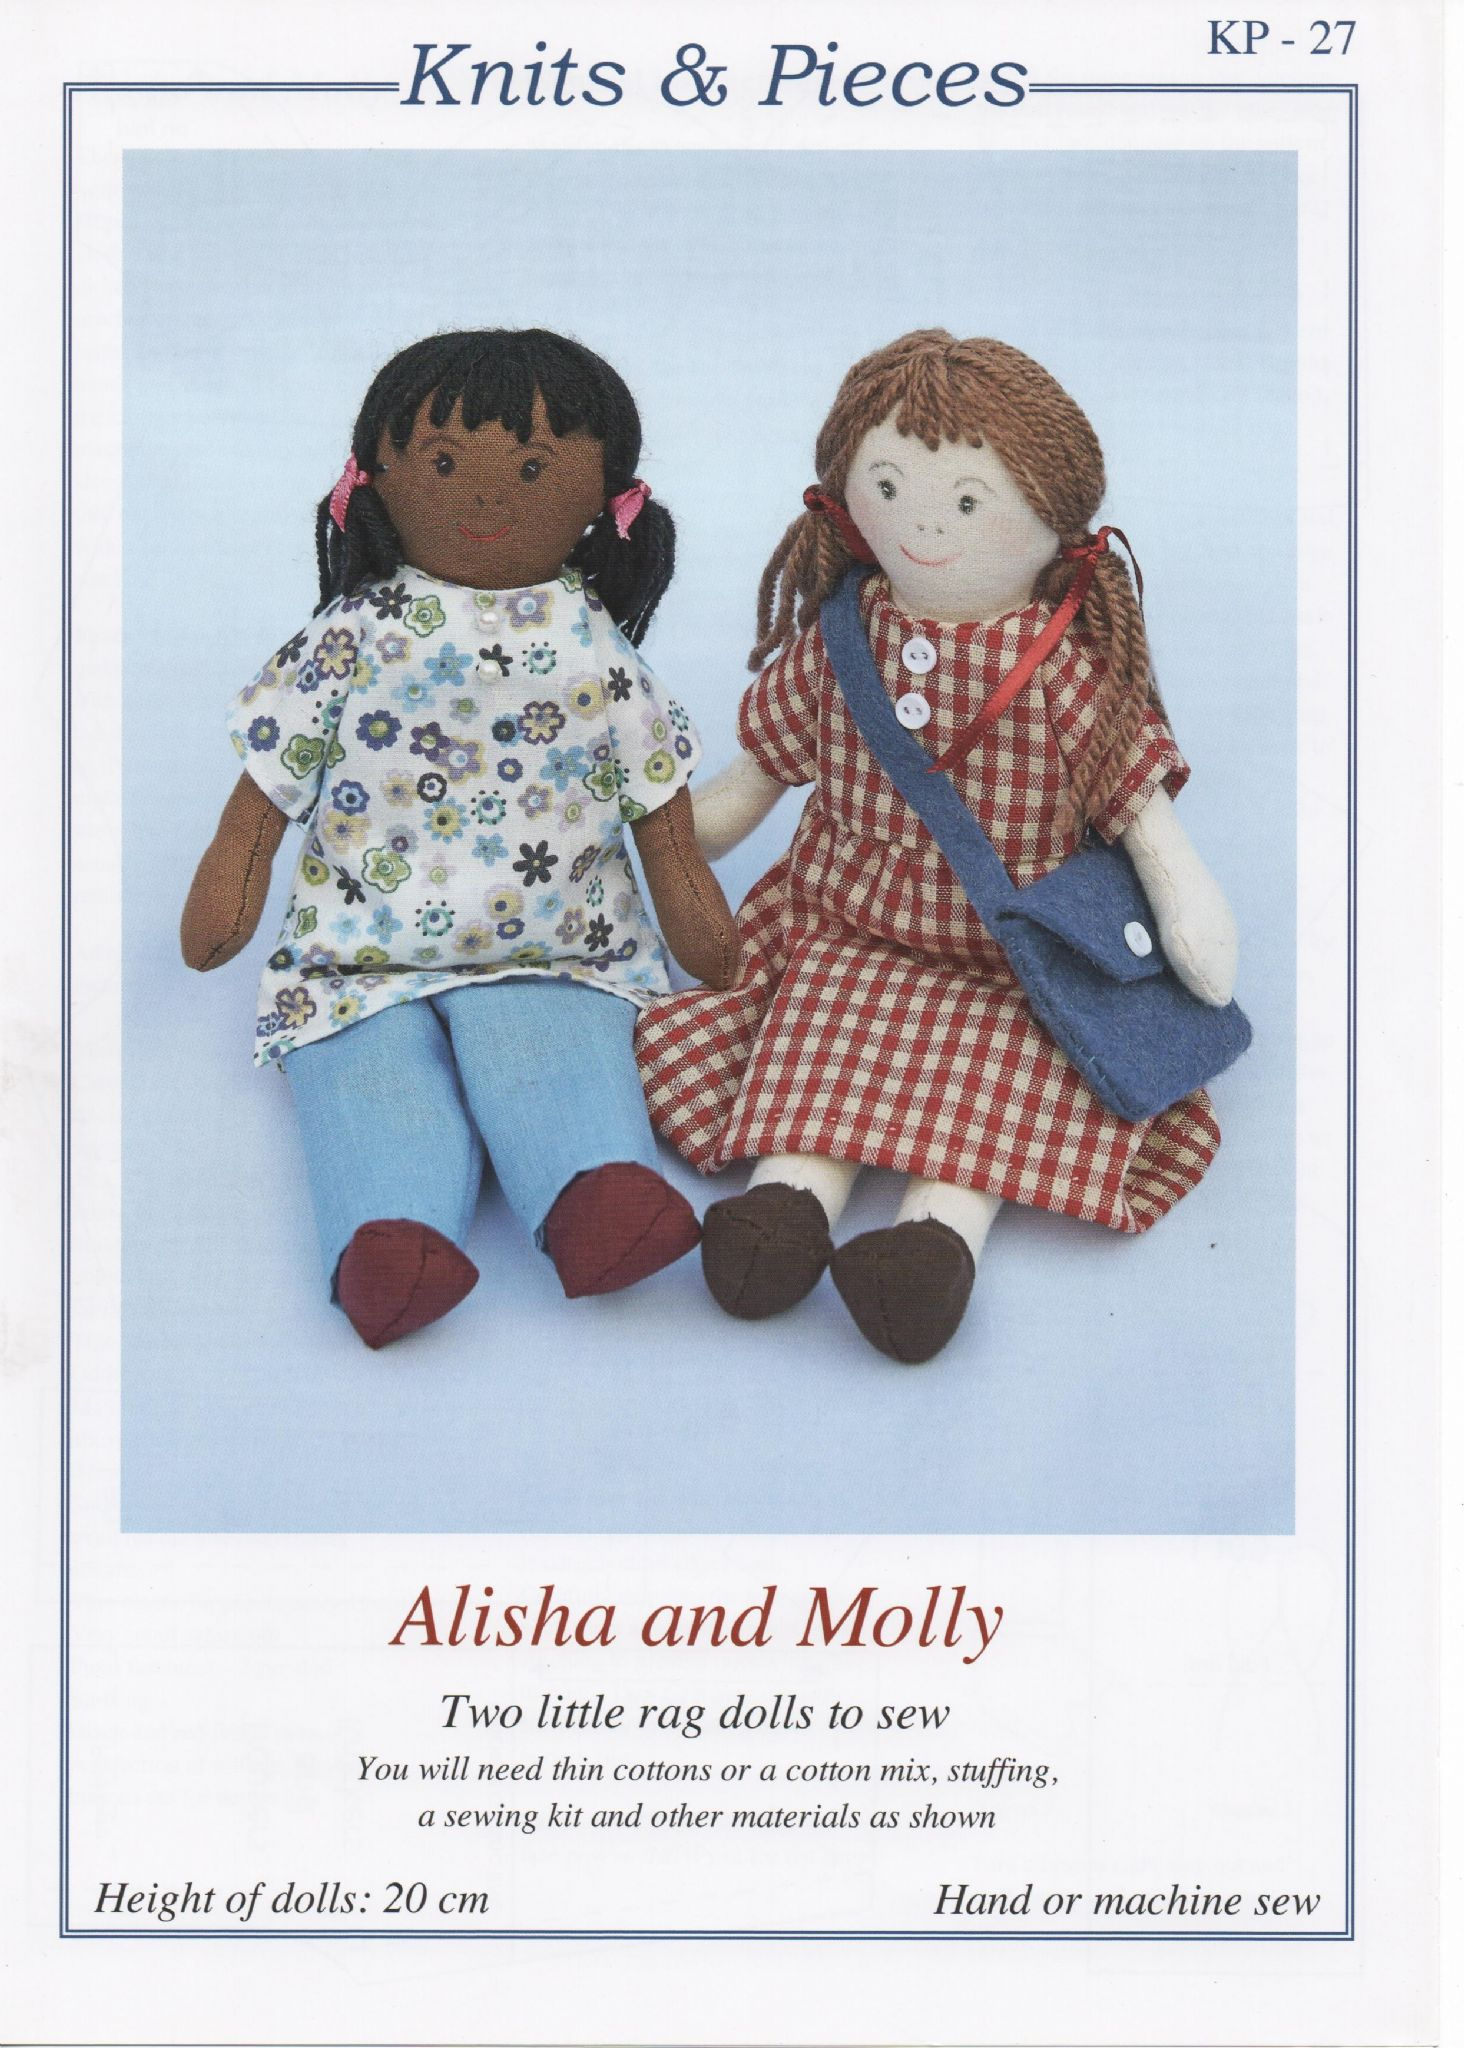 KP-27 KNITS & PIECES ALISHA & MOLLY TWO LITTLE RAG DOLL PATTERN